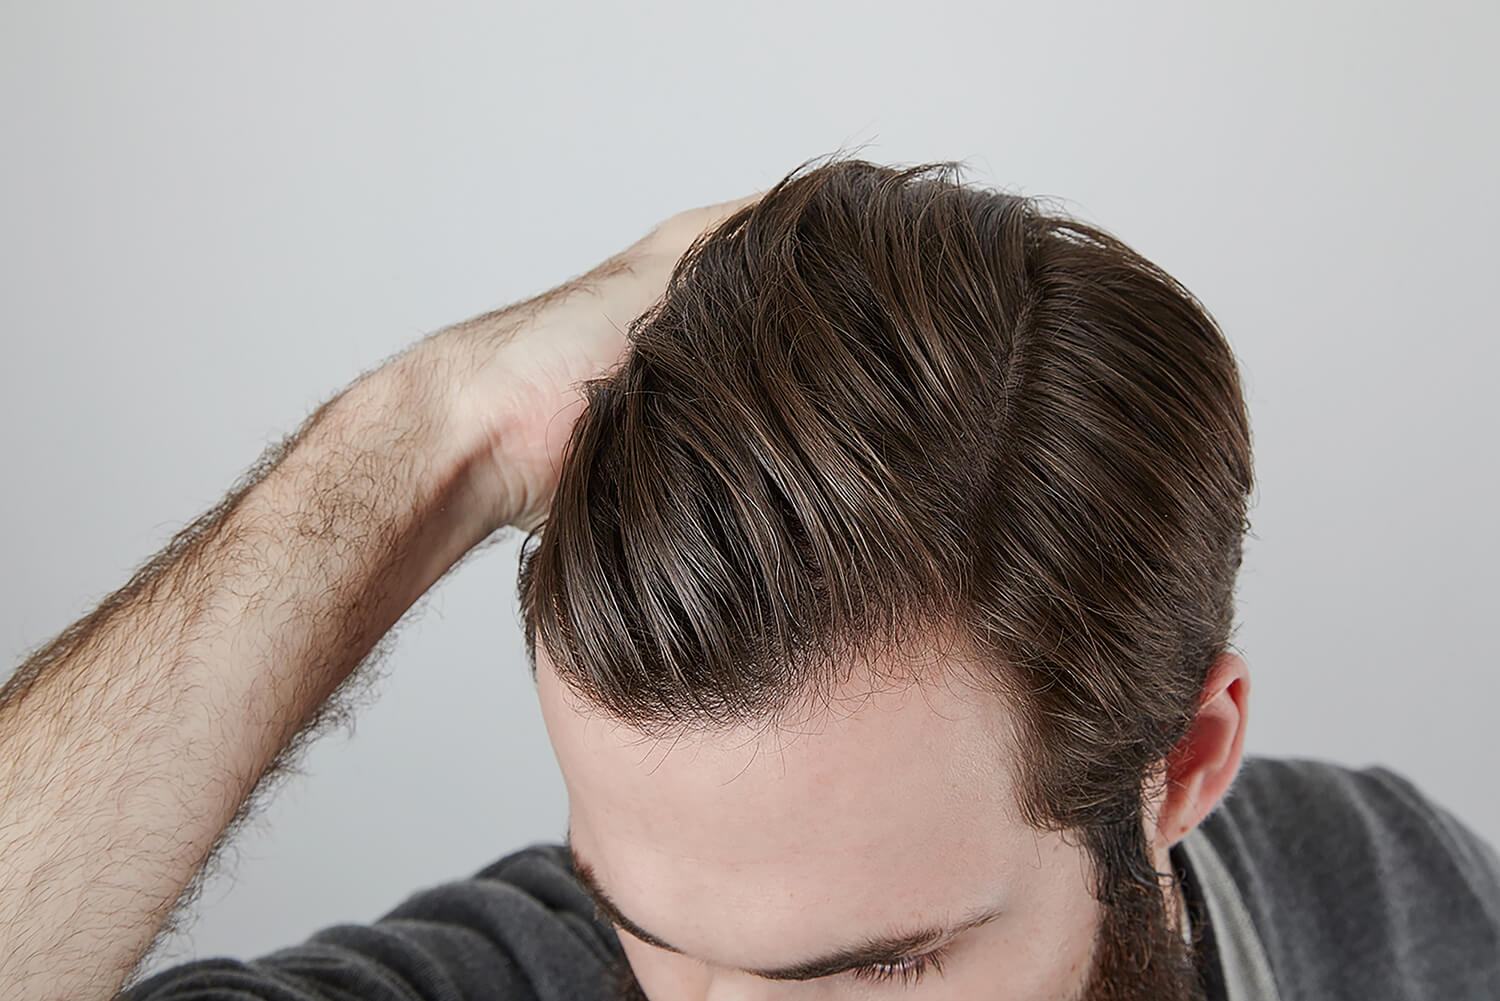 25 Expert Hair Care Tips for Men: How to Take Care of Your